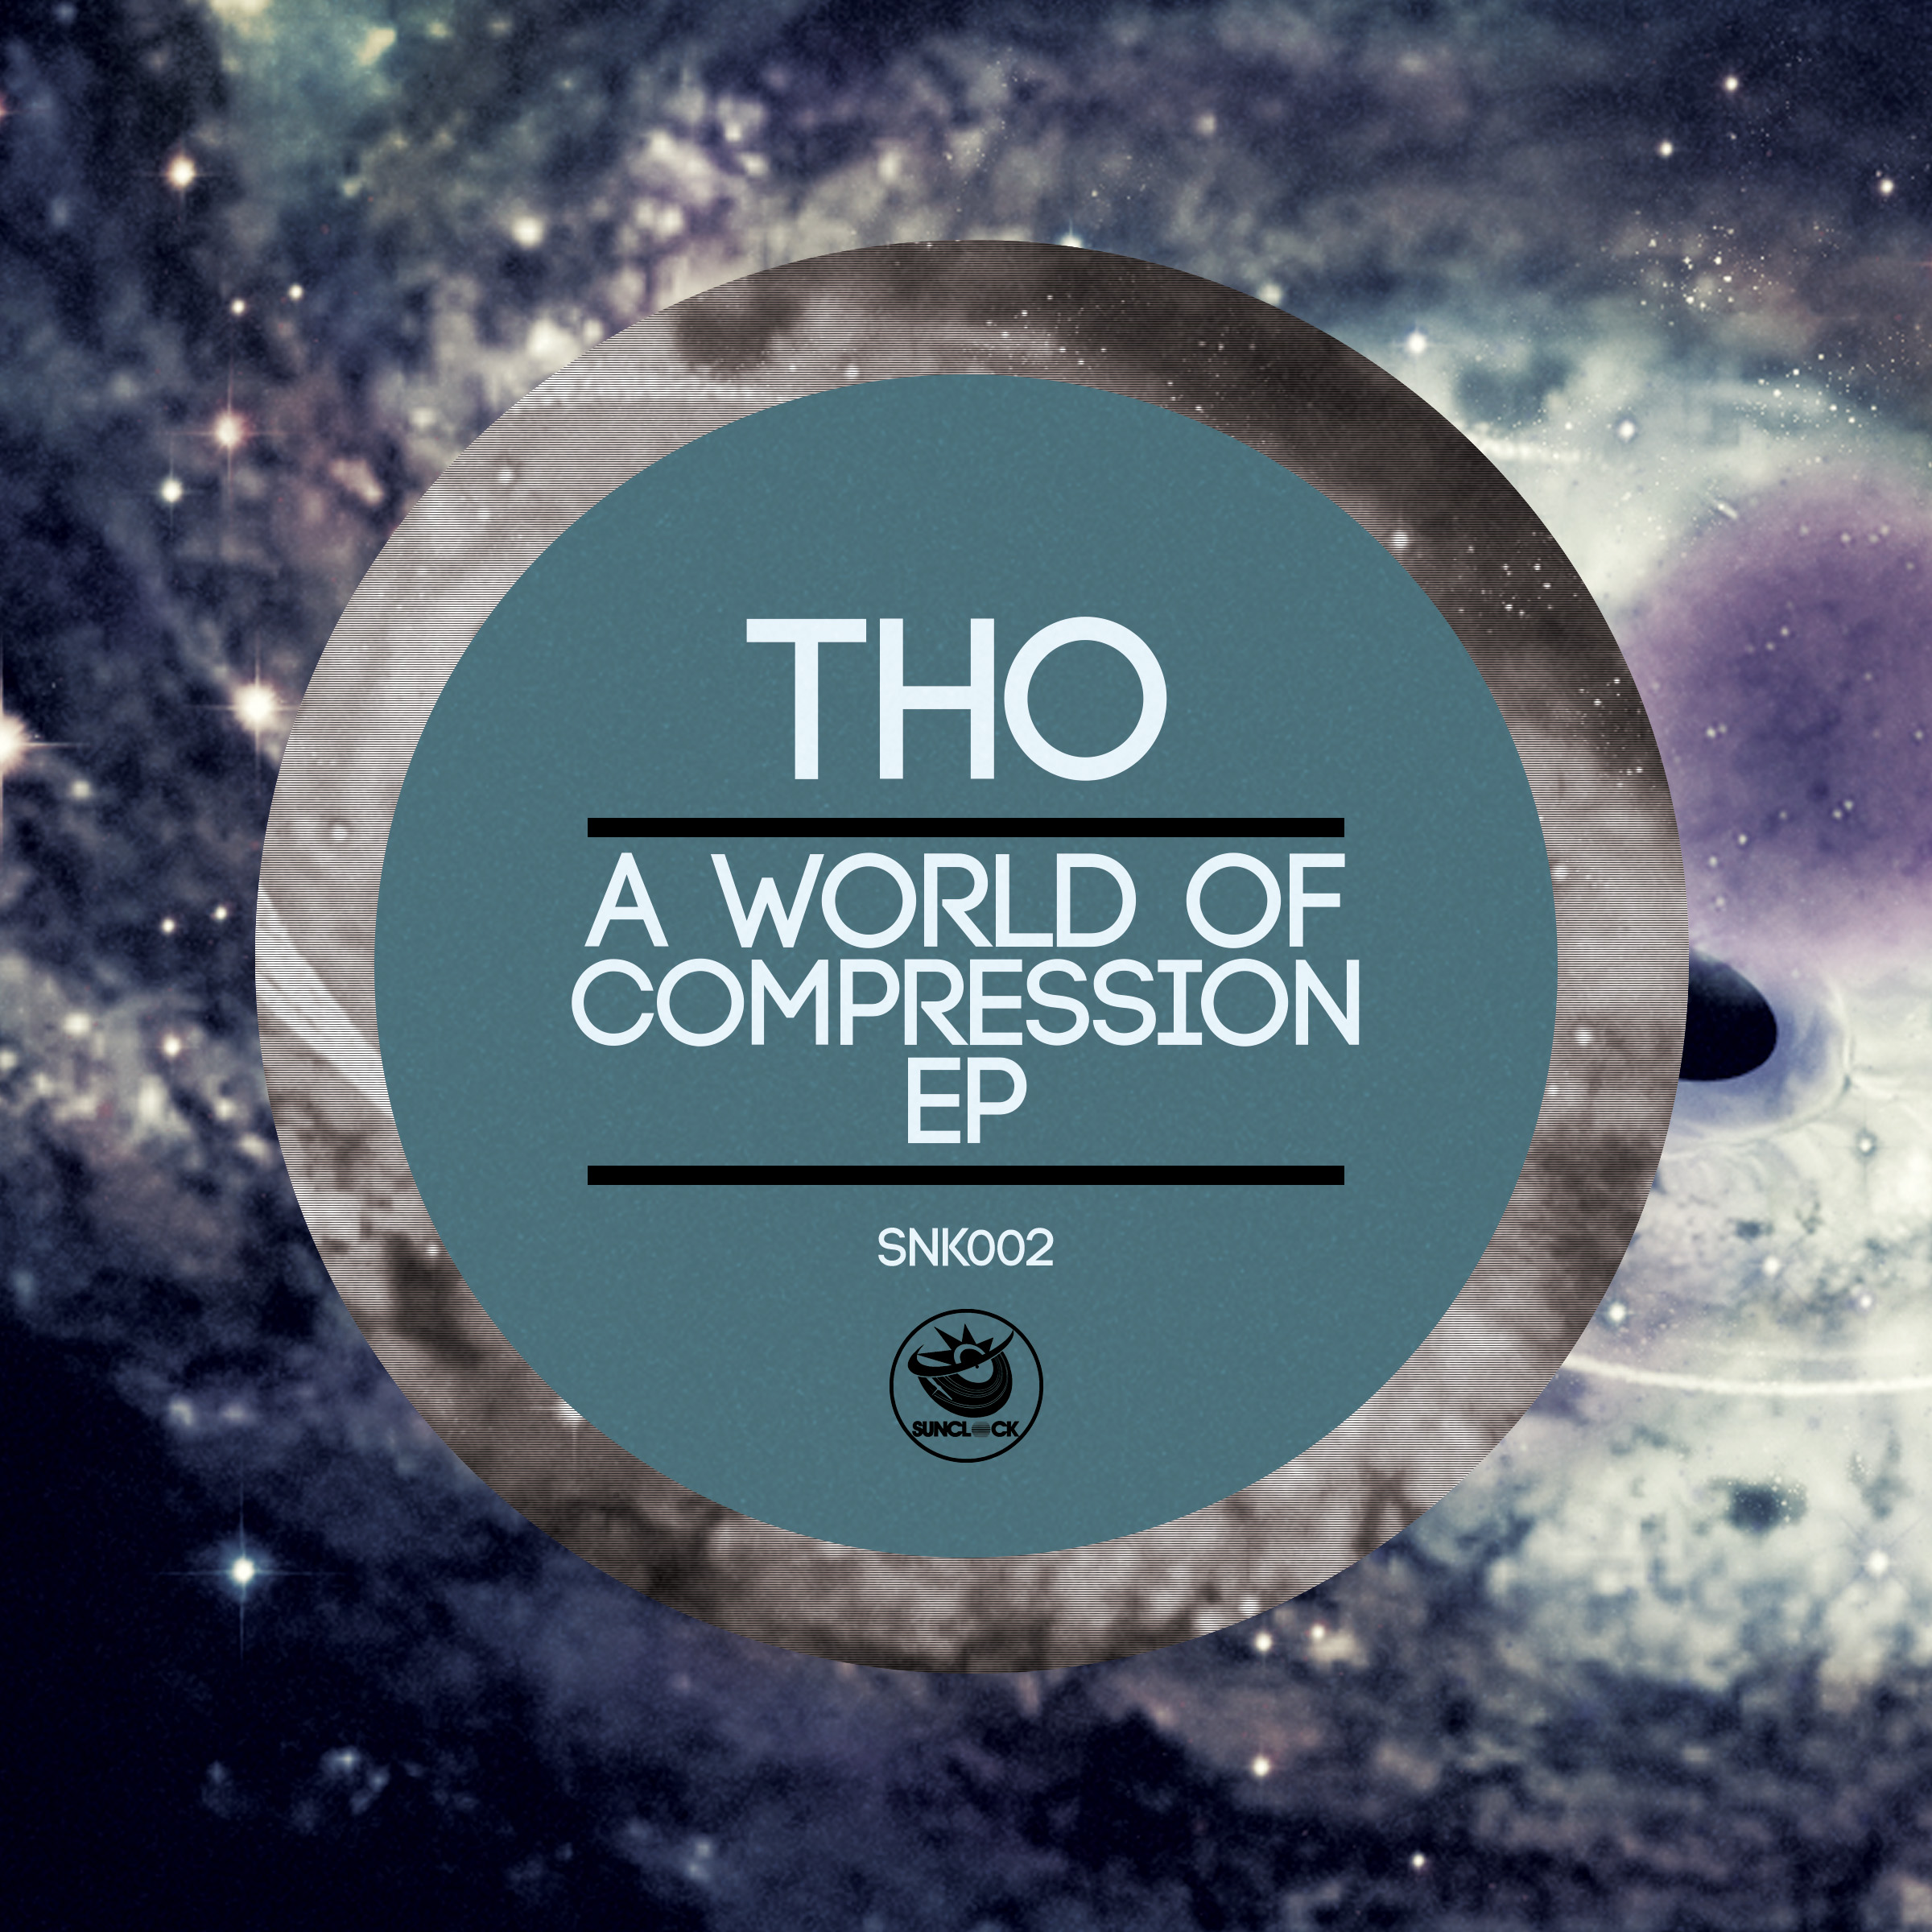 Tho - A World Of Compression Ep - SNK002 Cover